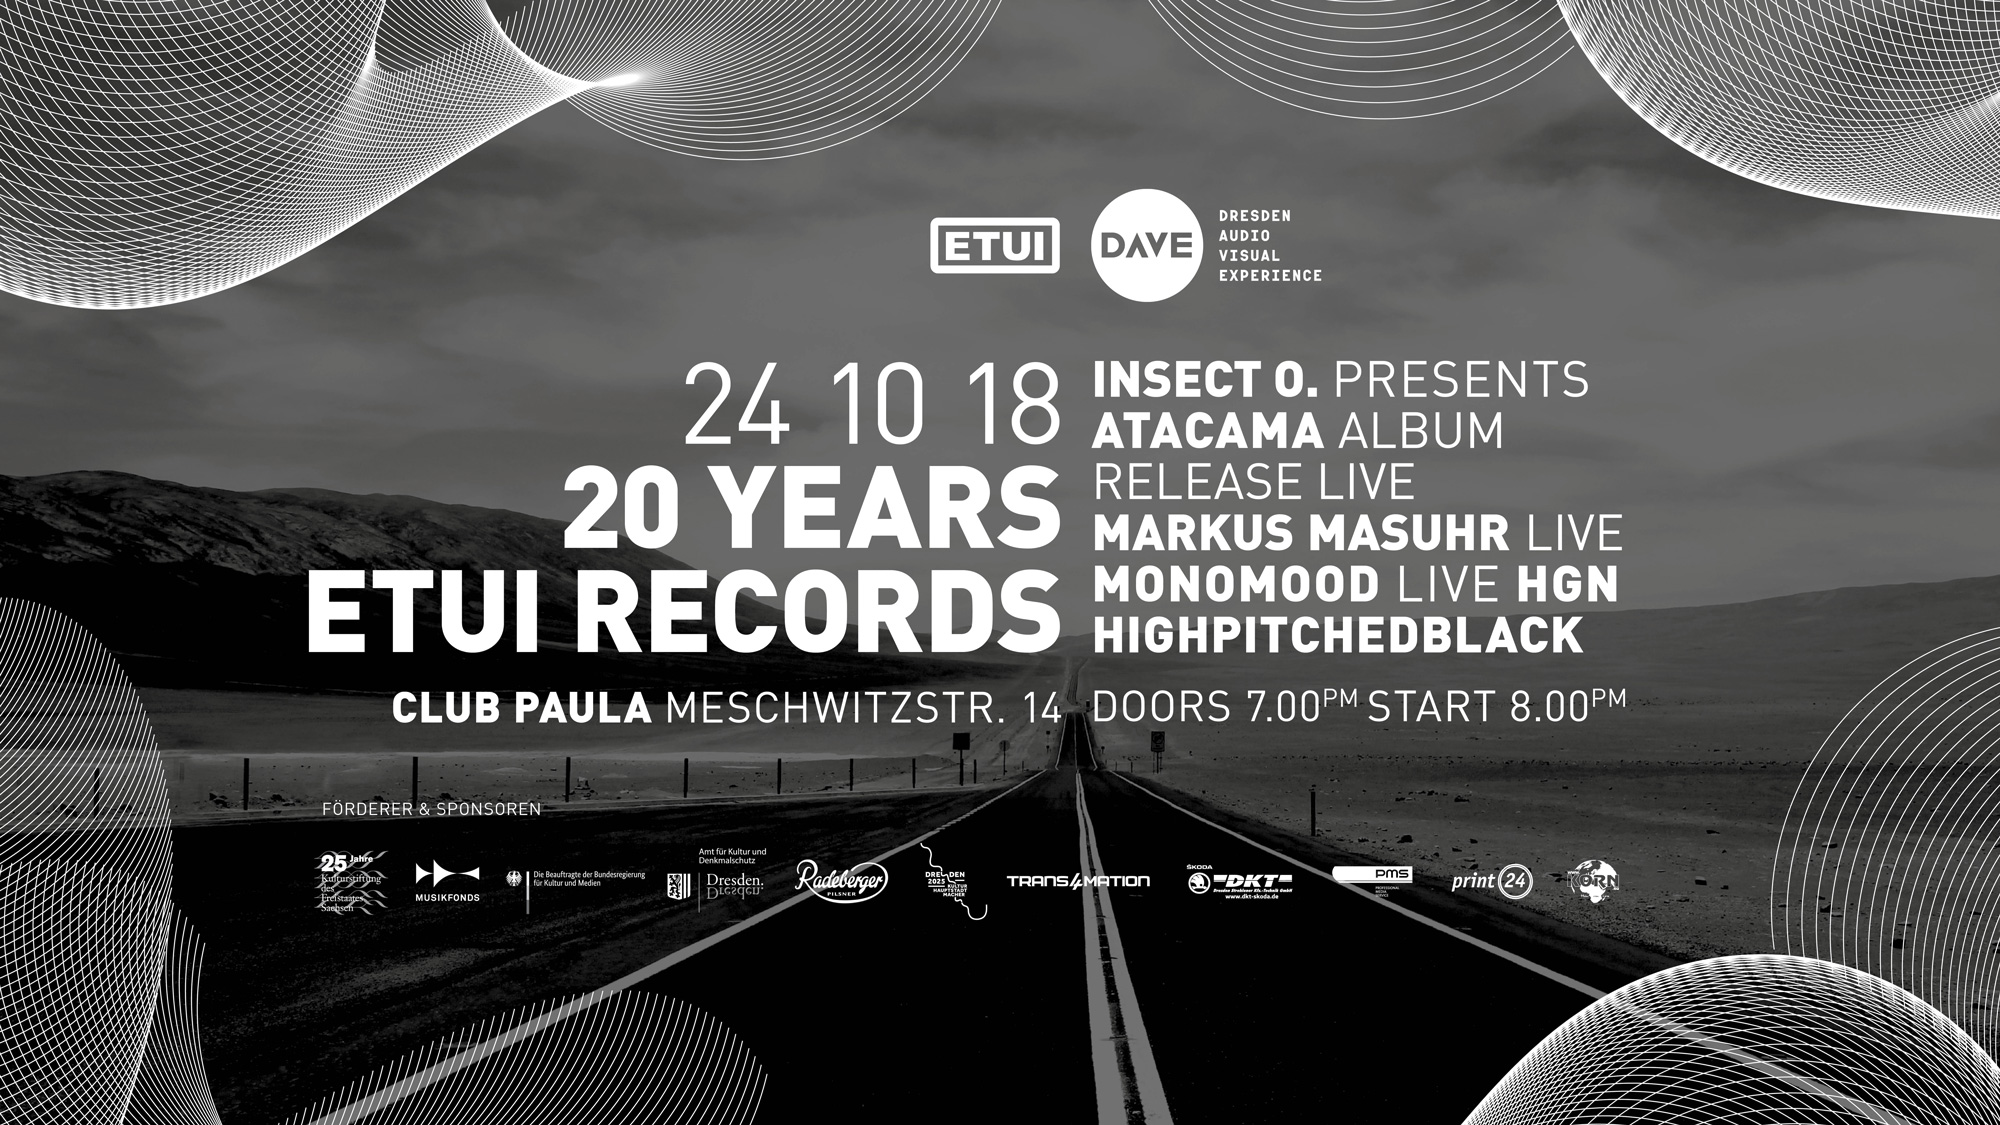 Insect O. live at 20 Years Etui Records